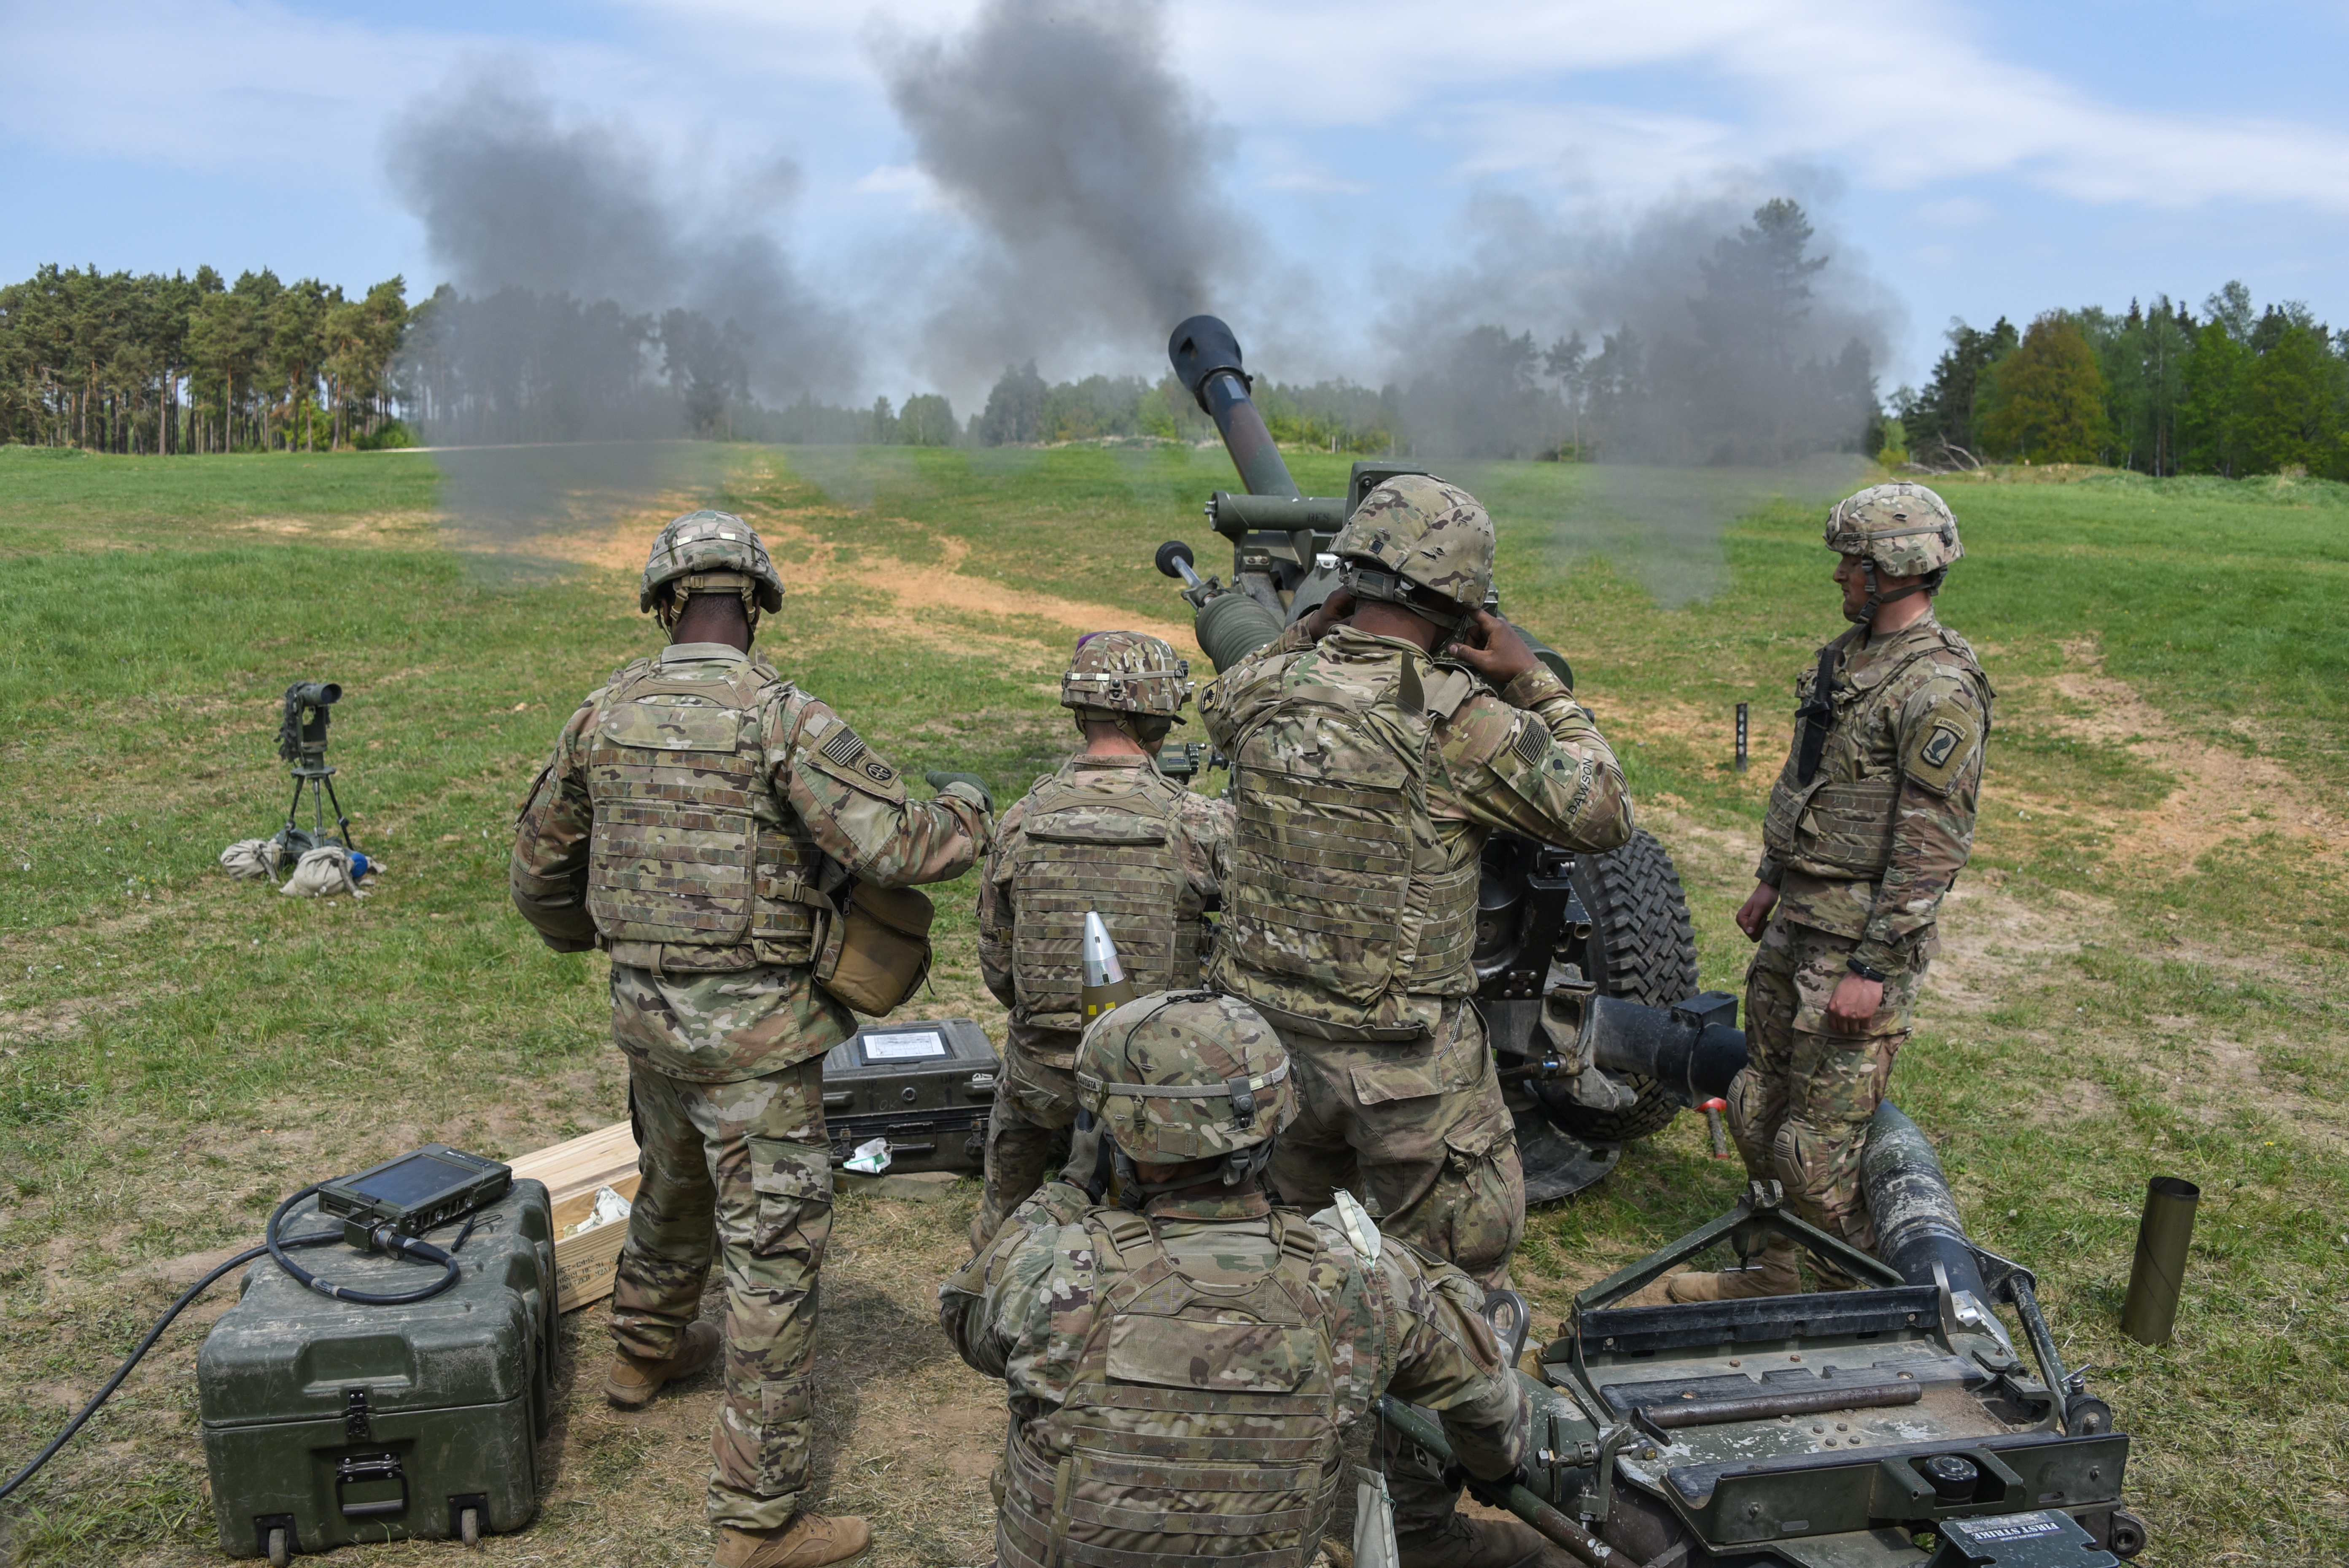 U.S. Army Paratroopers, assigned to Battery A, 4th Battalion, 319th Airborne Field Artillery Regiment, 173rd Airborne Brigade, fire a M119 105mm howitzer during a live fire exercise at the 7th Army Training Command's Grafenwoehr Training Area, Germany, May 4, 2018. (U.S. Army photo by Markus Rauchenberger)